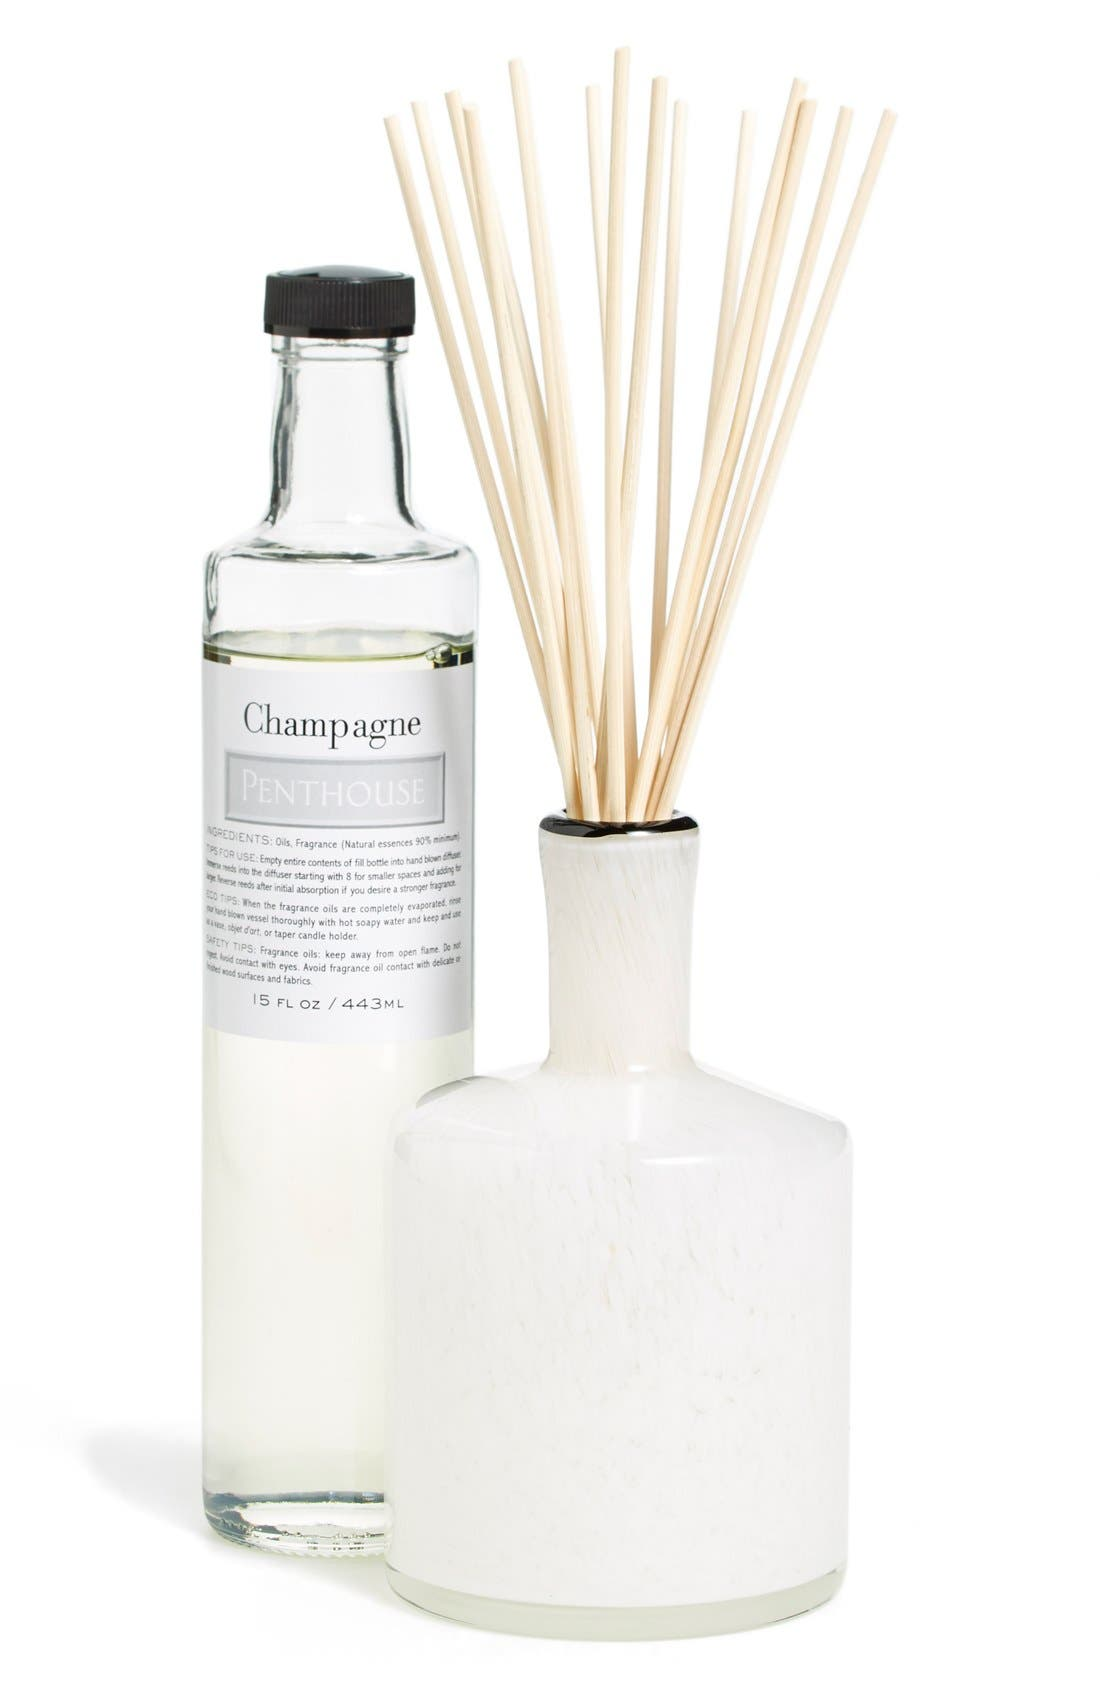 'Champagne - Penthouse' Fragrance Diffuser,                             Main thumbnail 1, color,                             No Color